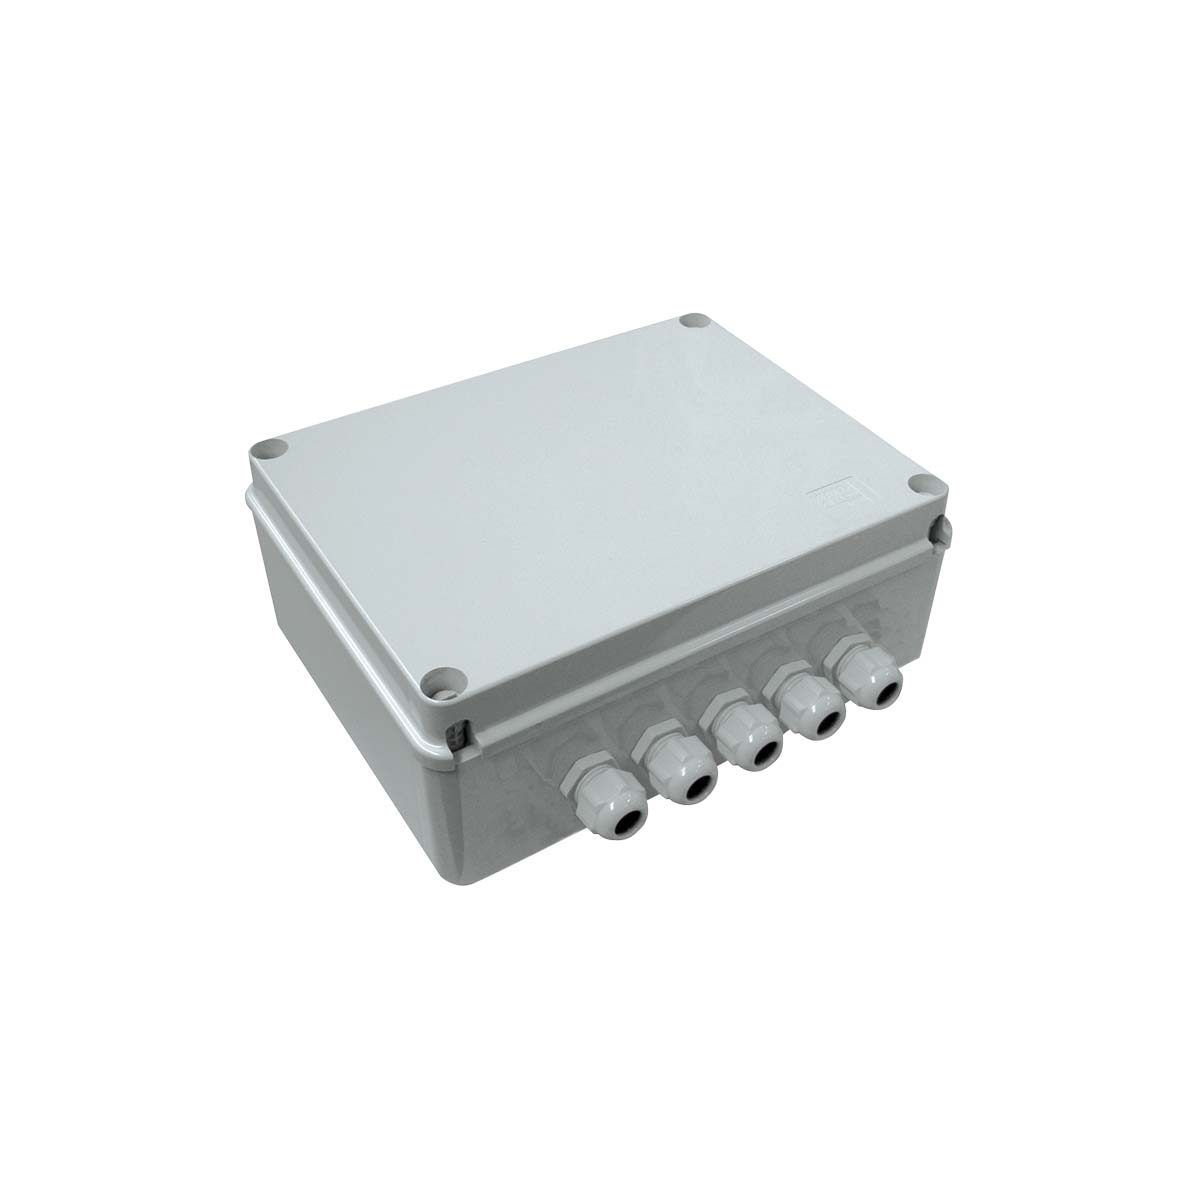 ON/OFF 230 Vac OUTDOOR LIGHTS AND LOADS - Teleco